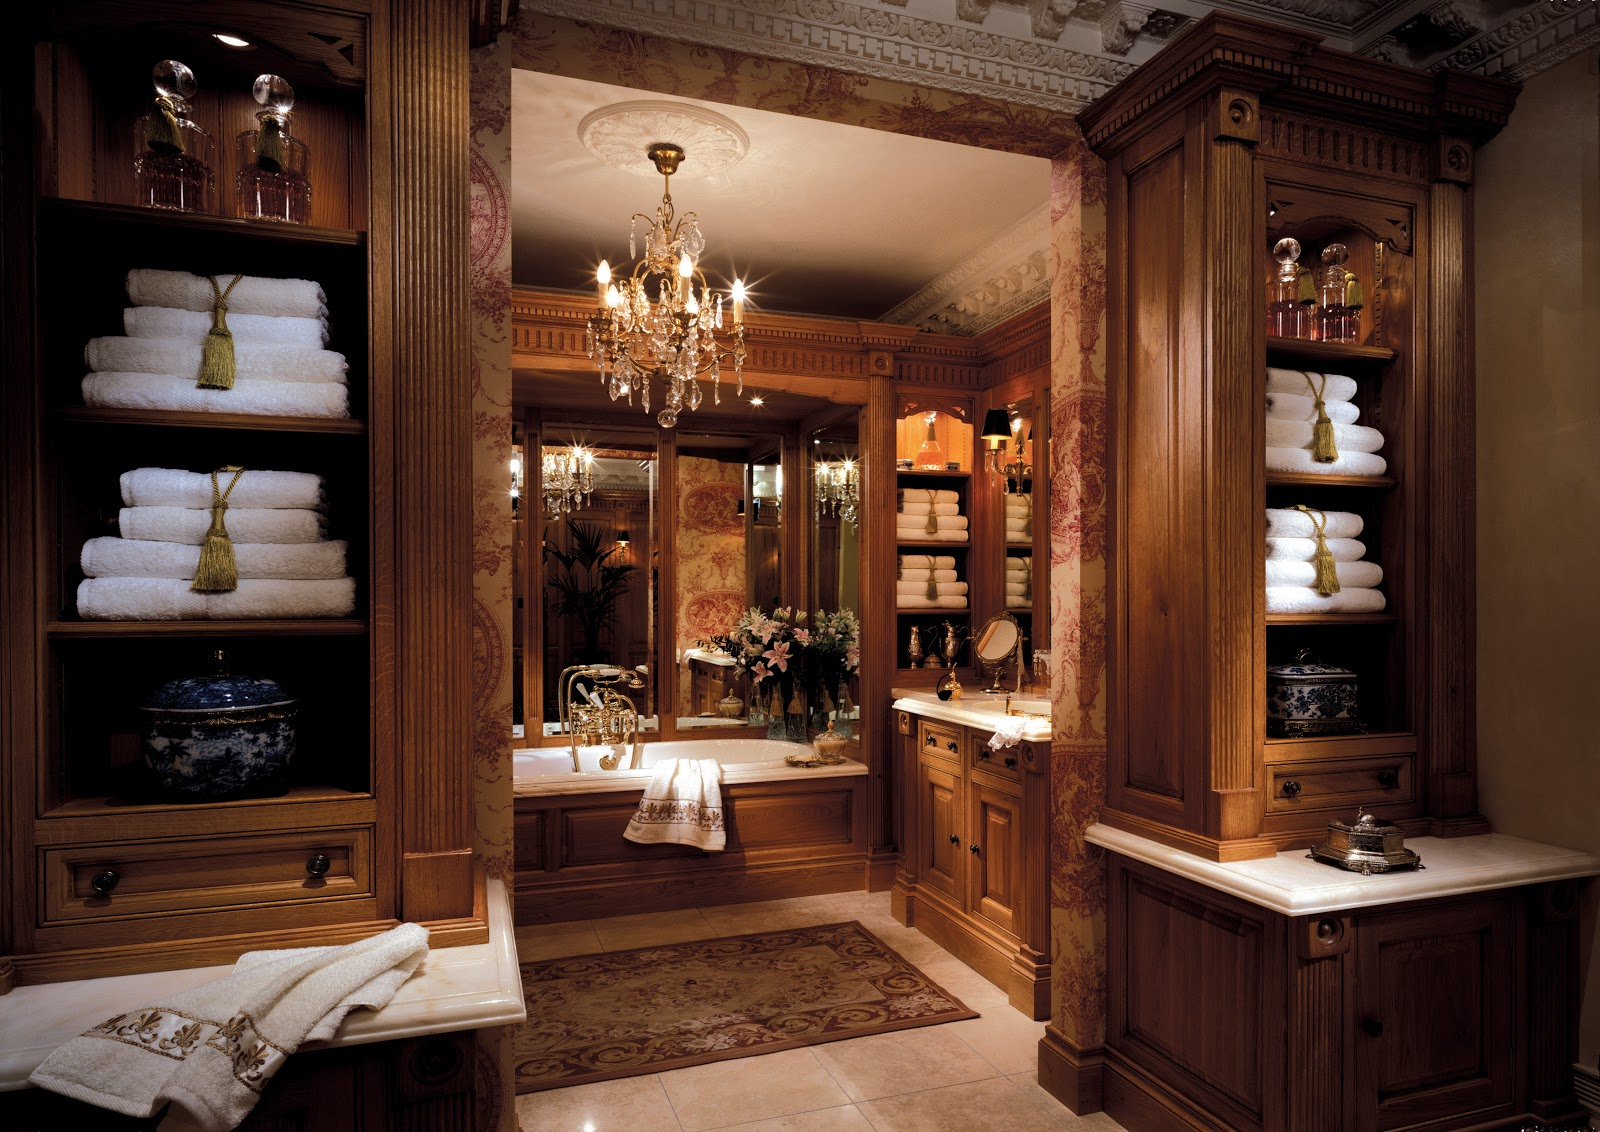 Tradition interiors of nottingham clive christian luxury bathroom furniture - Luxury bathroom ...